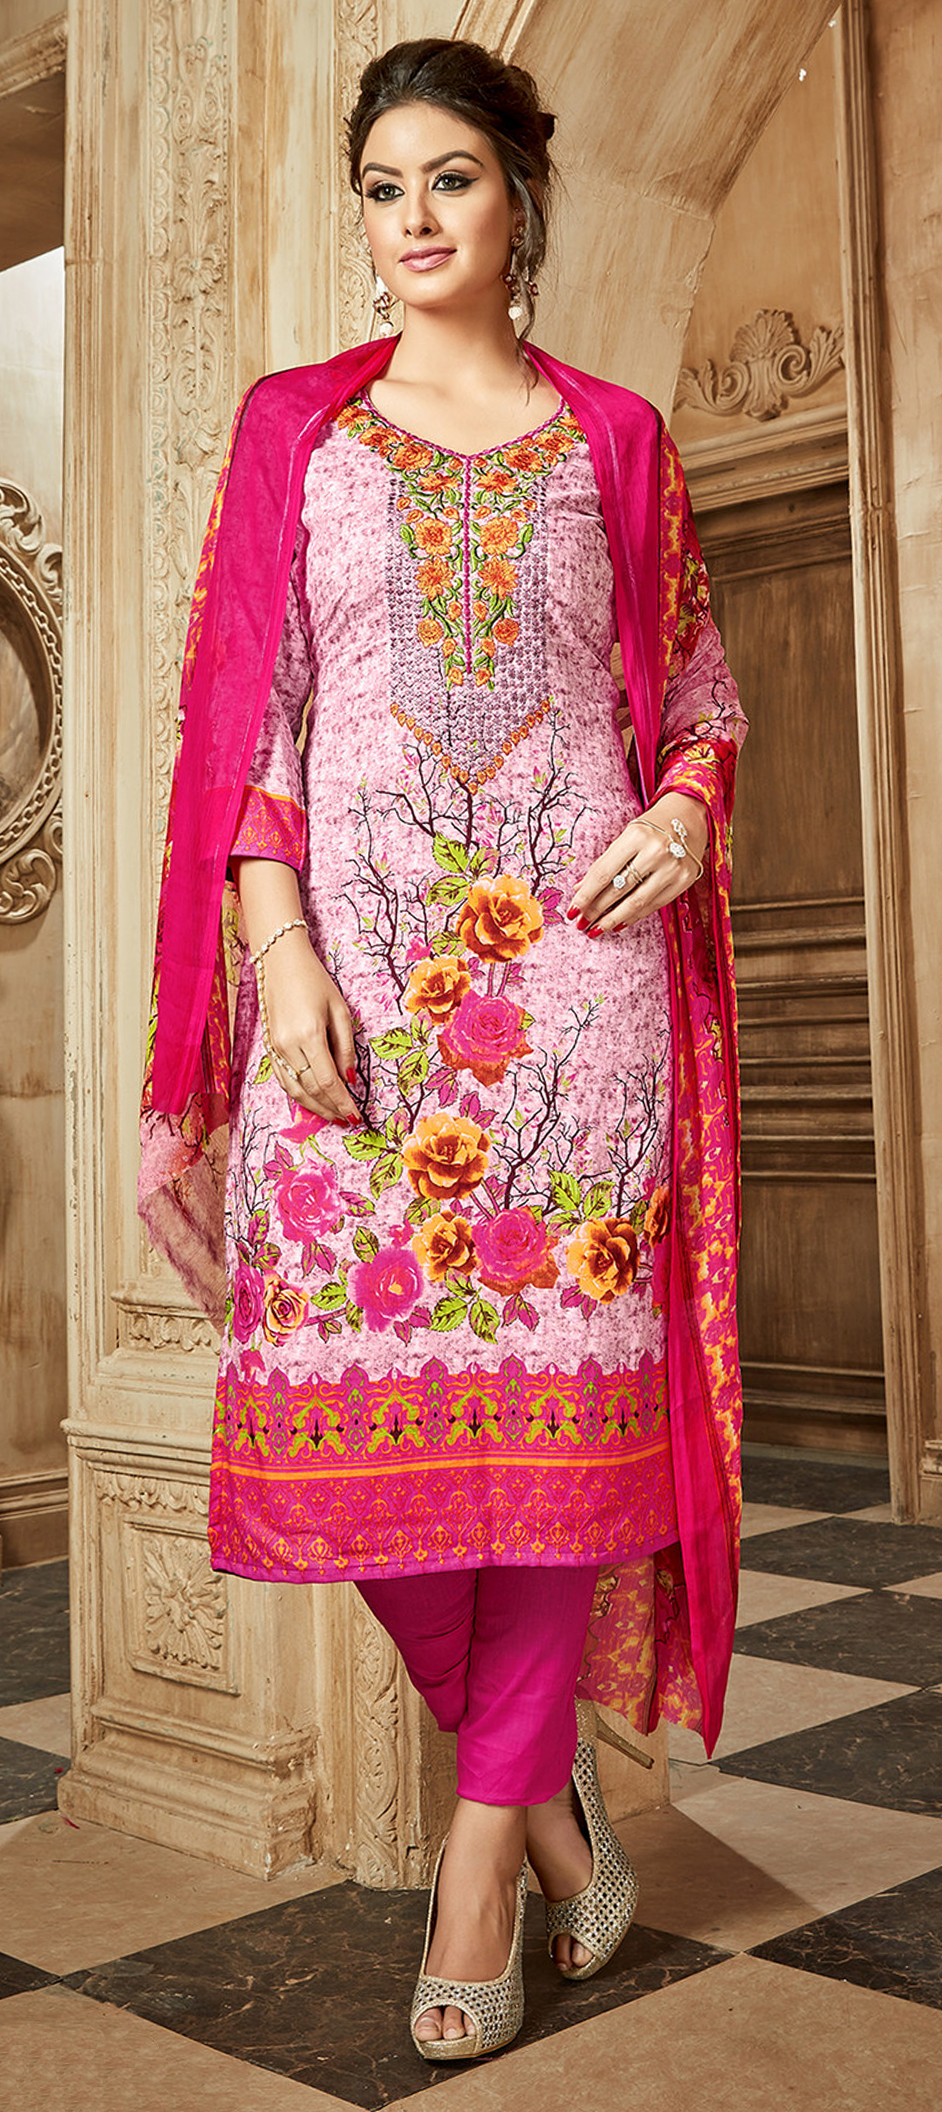 497668: Pink and Majenta color family unstitched Party Wear Salwar ...